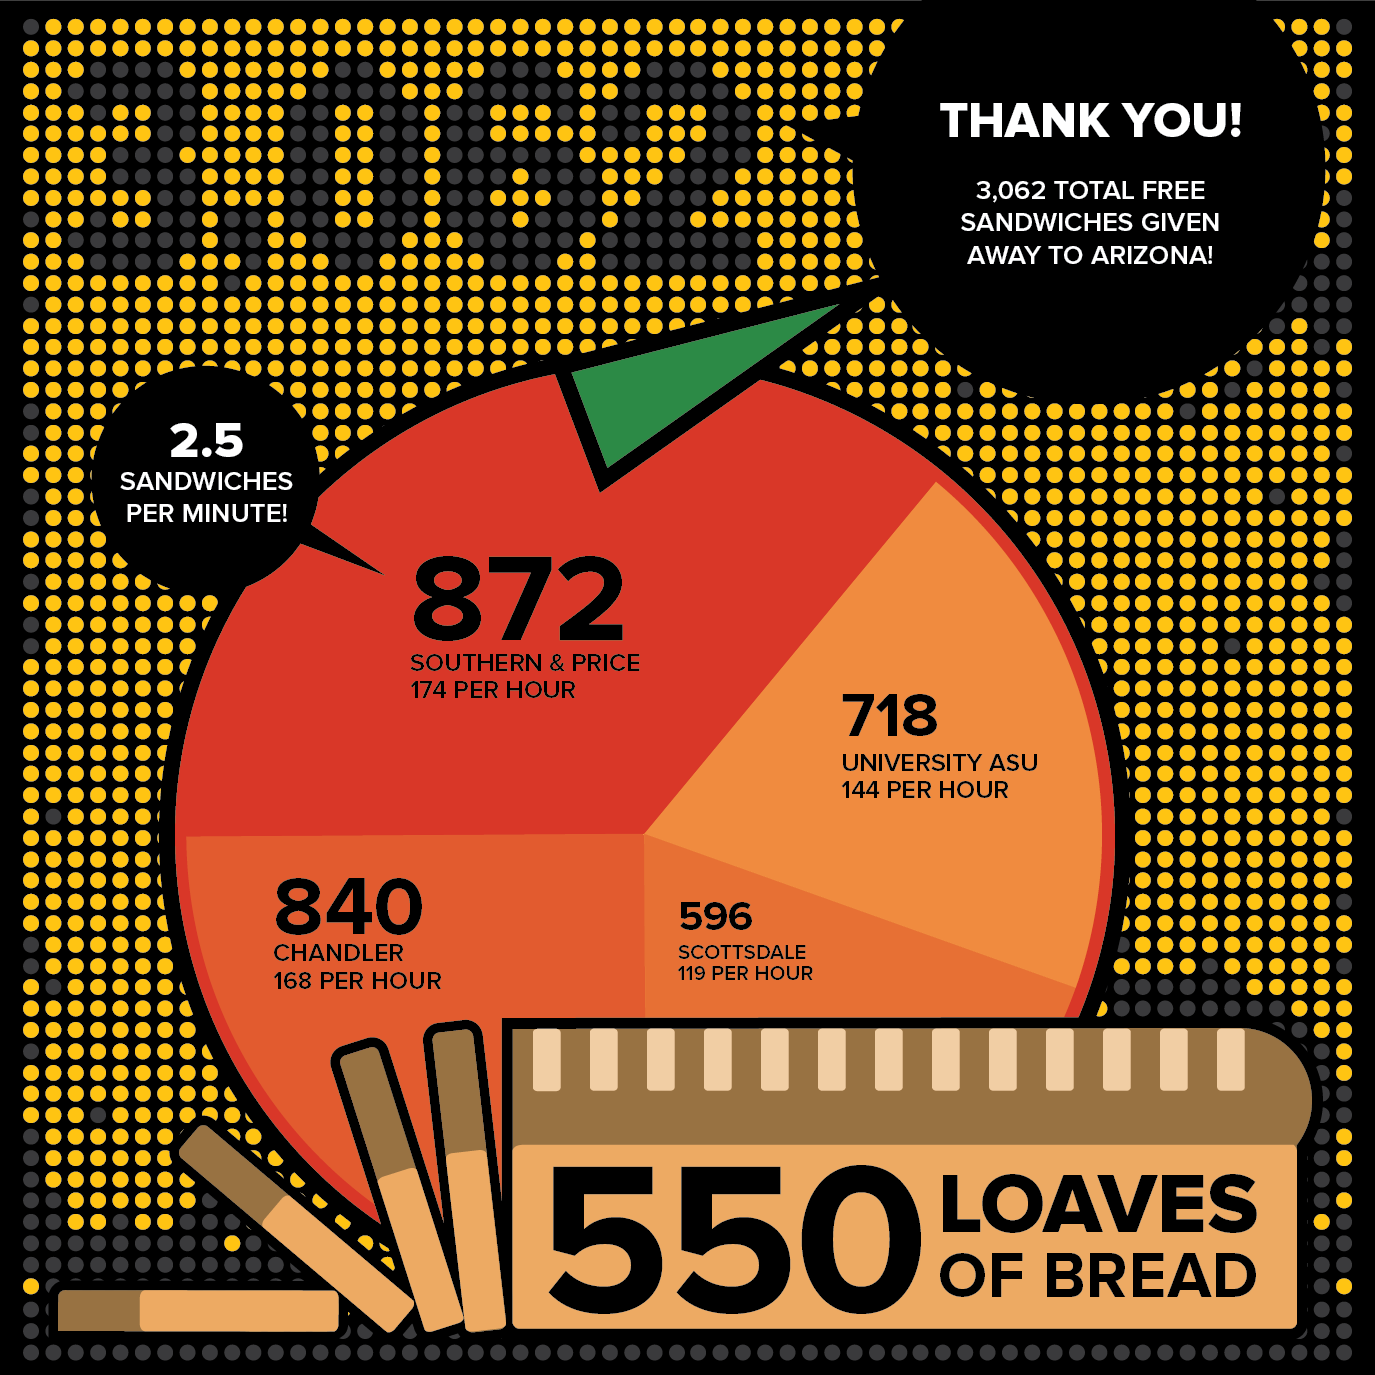 Data from Dilly's Deli Free Sandwich Day 2013.